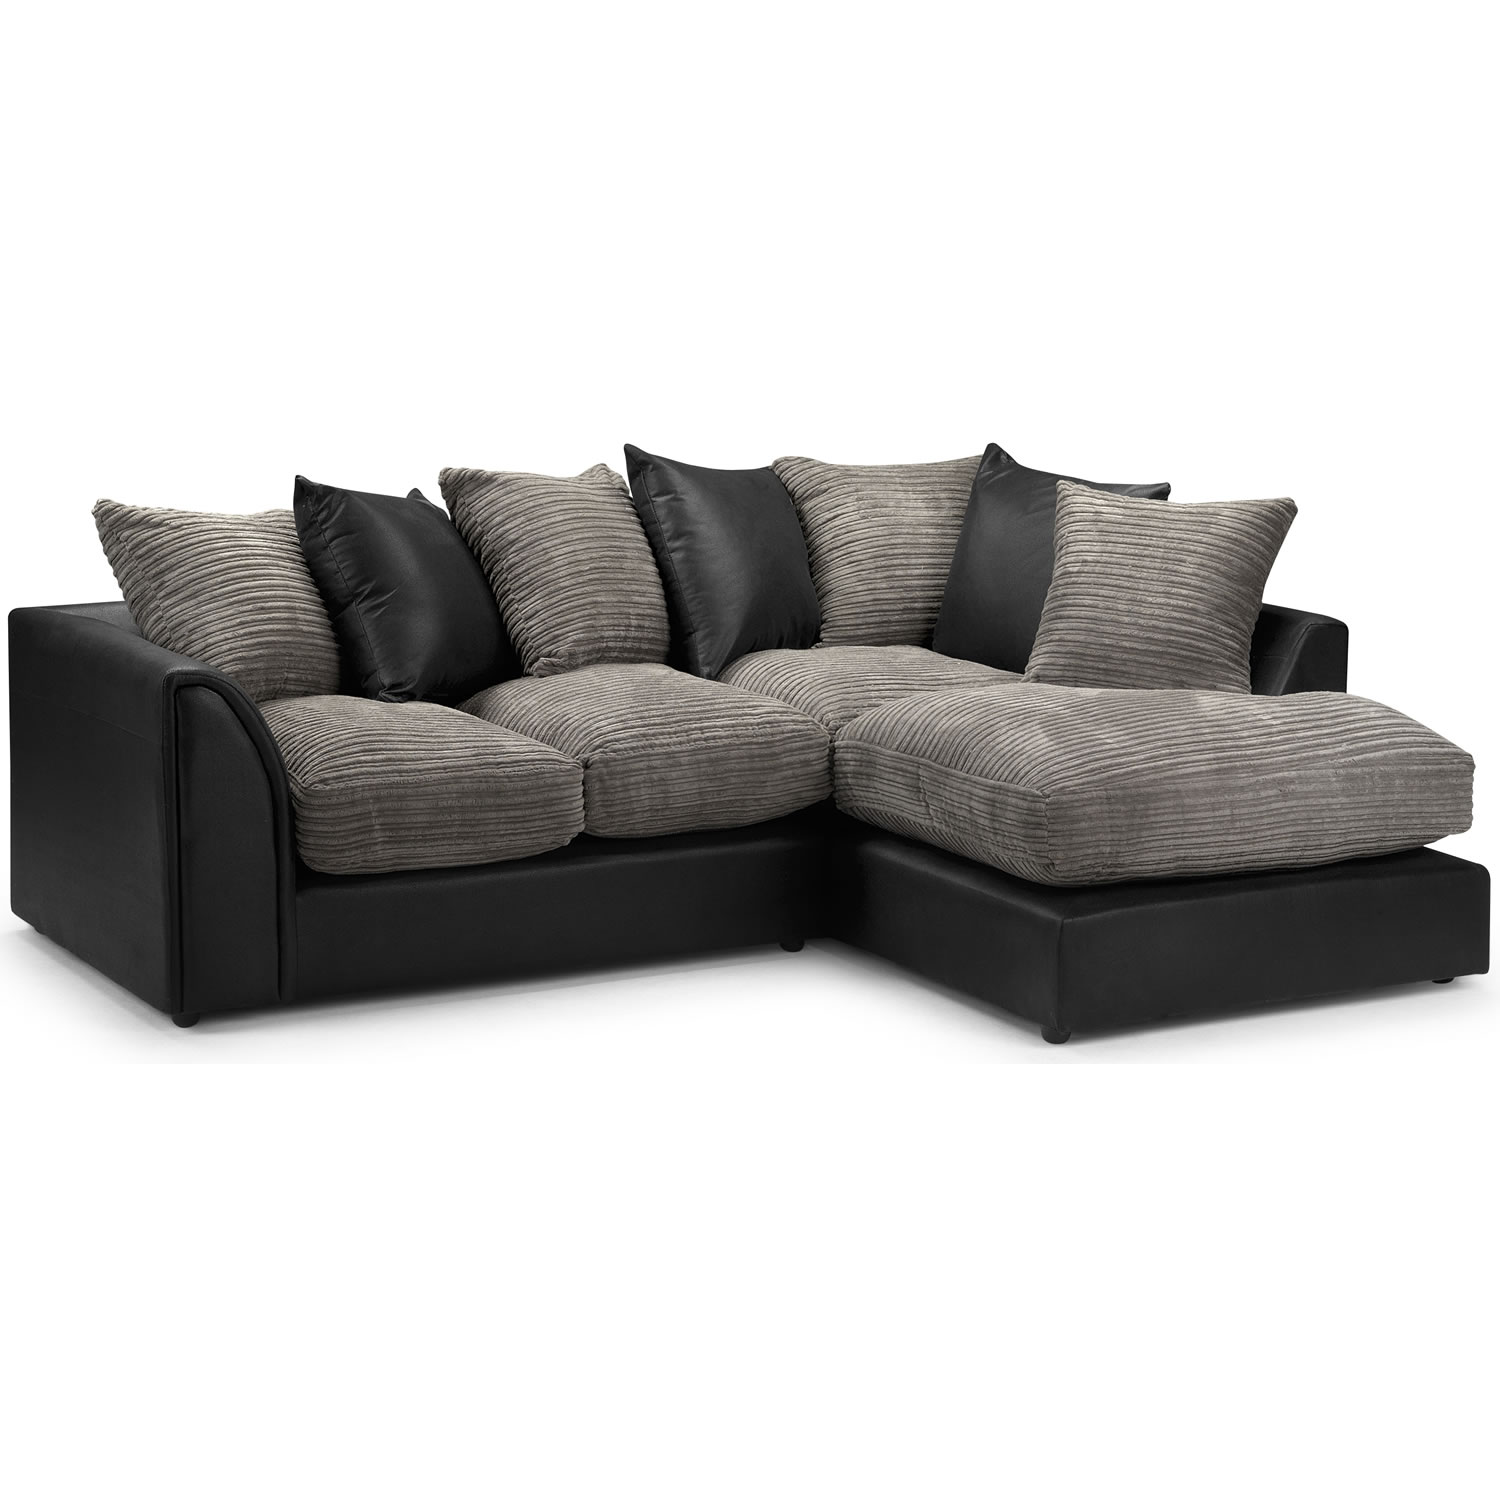 corner sofas friendu0027s email address * QHHYAQI